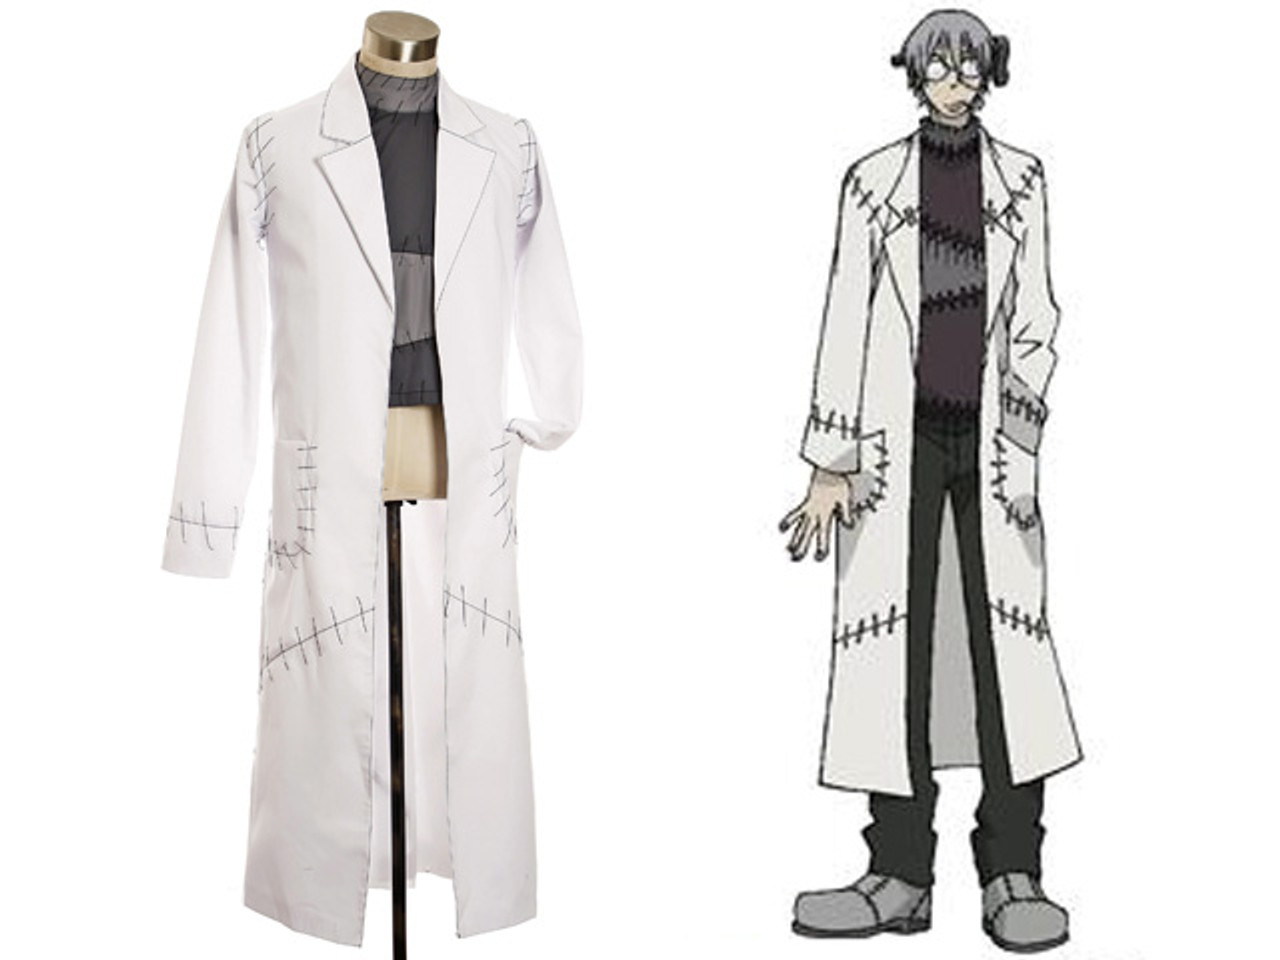 Soul Eater Franken Stein Doctor Cosplay Costume from Soul Eater Uniform Suit